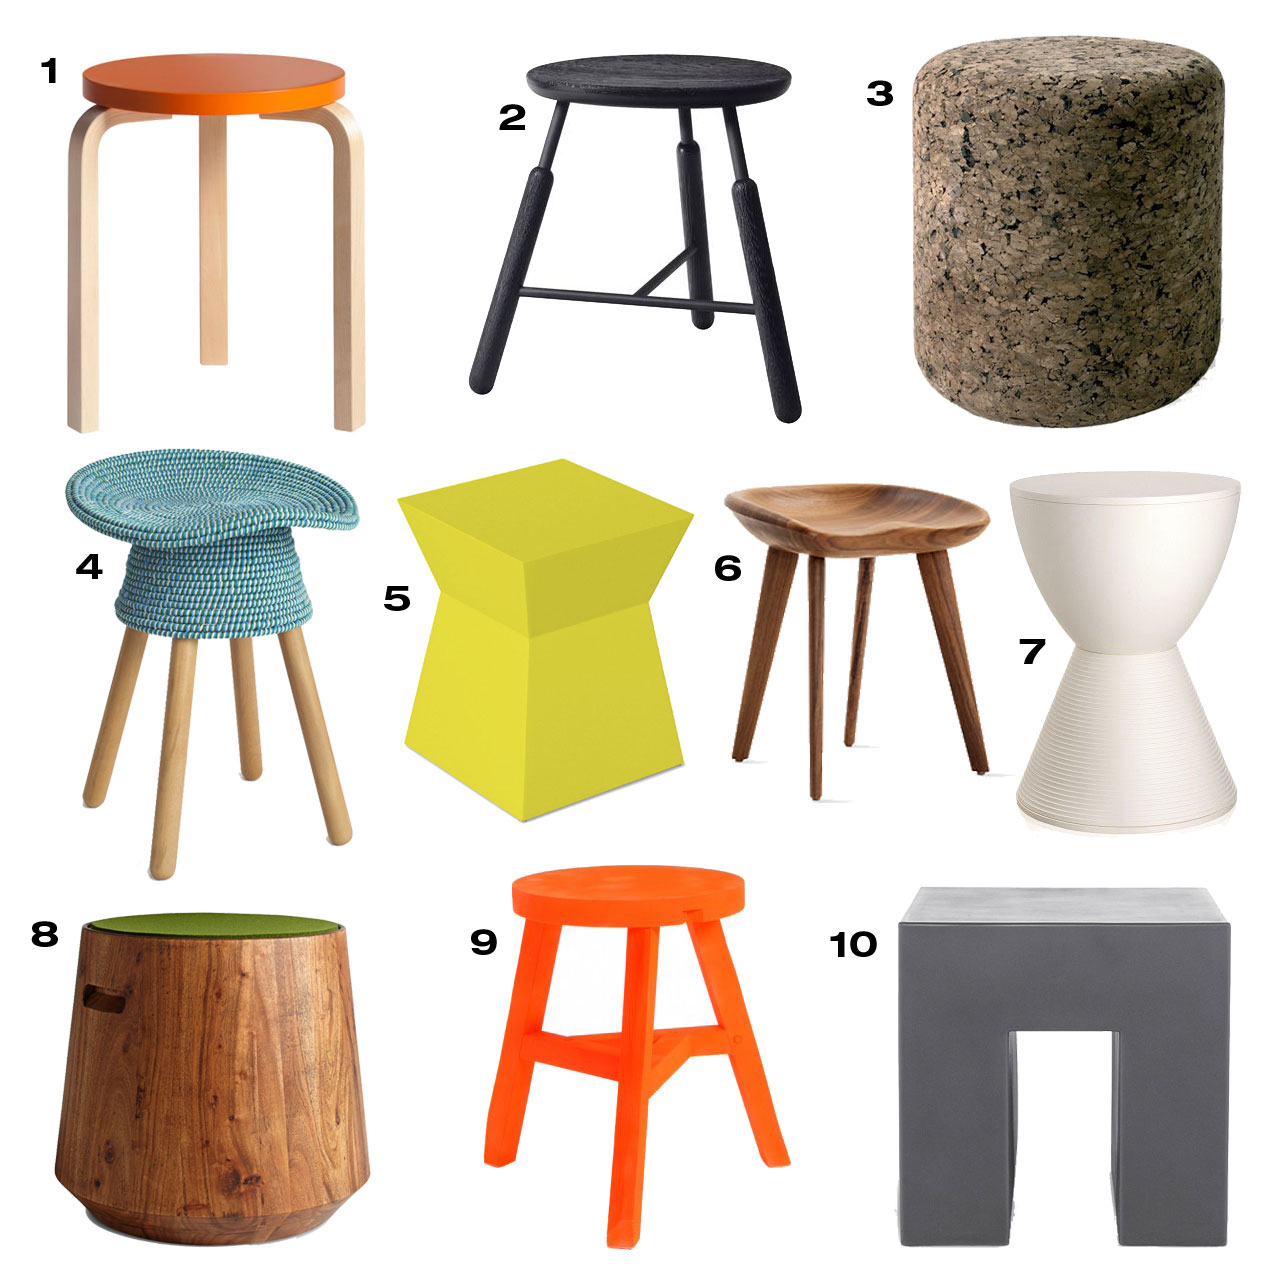 10 Modern Stools Design Milk